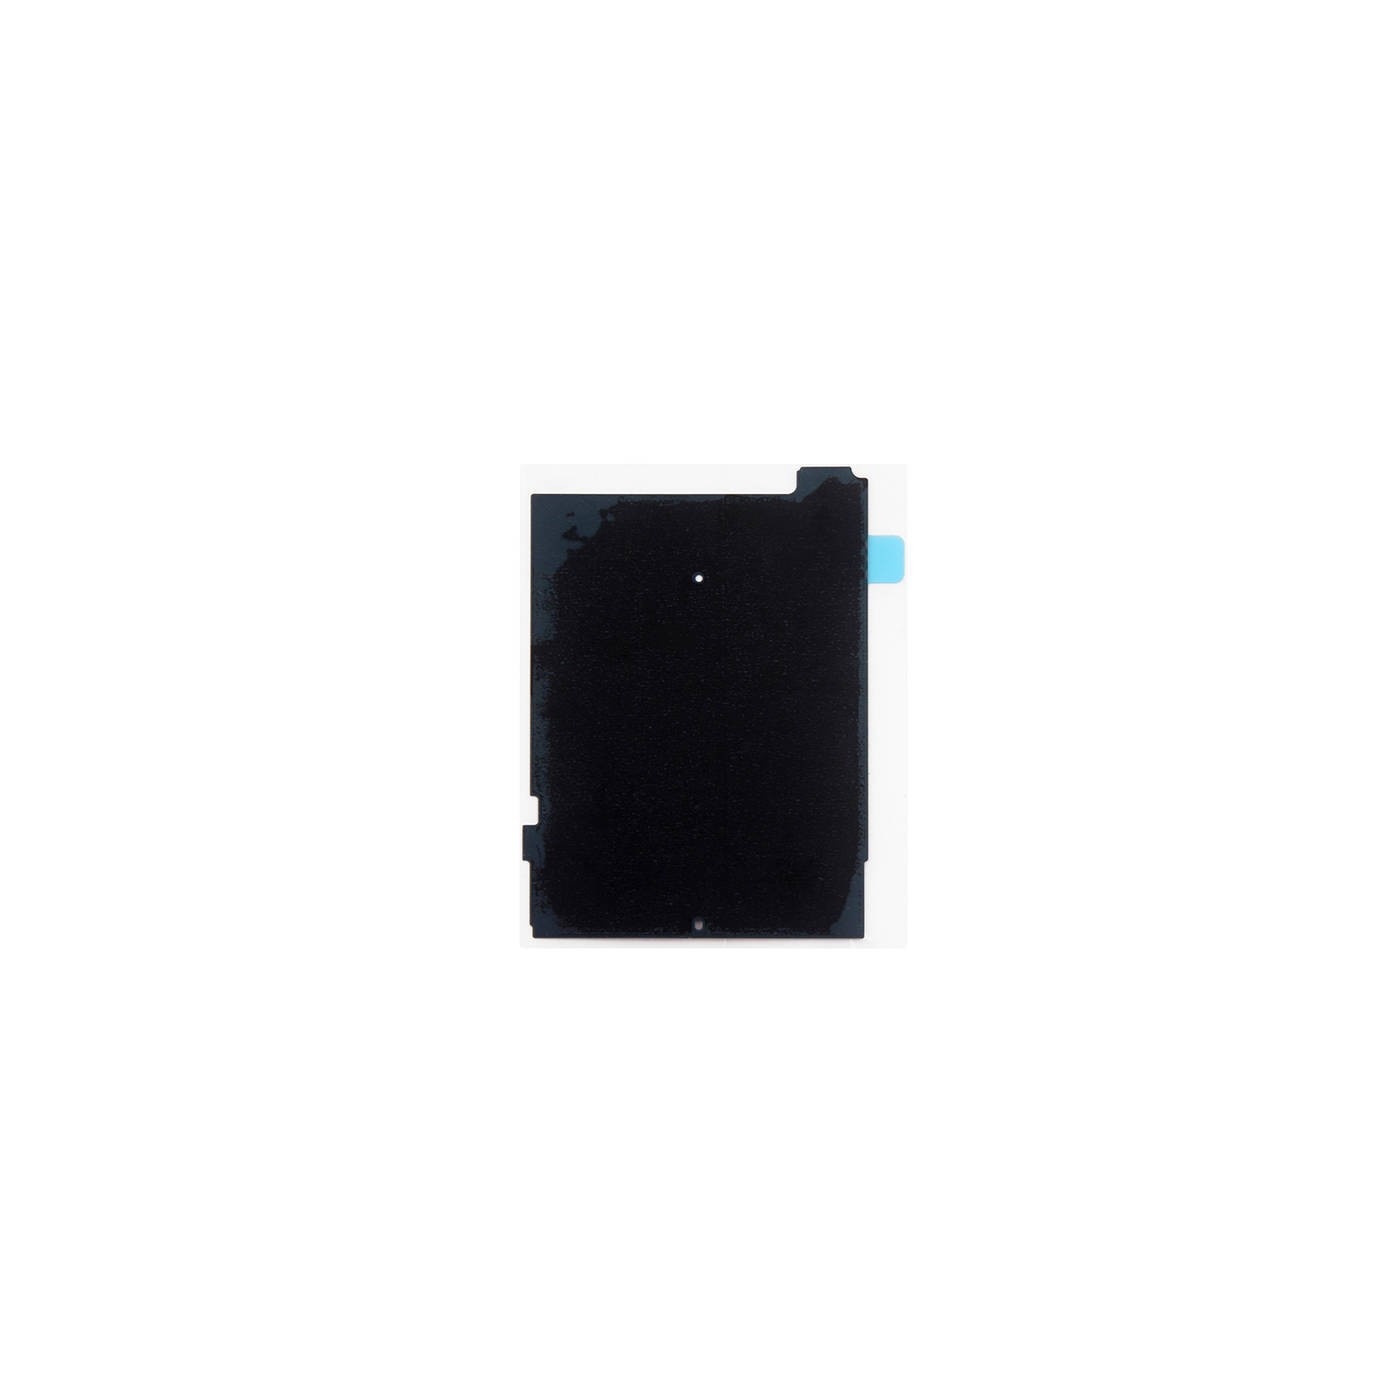 Telaio supporto lcd display per Iphone 6 plus metallo anti statico anti calore